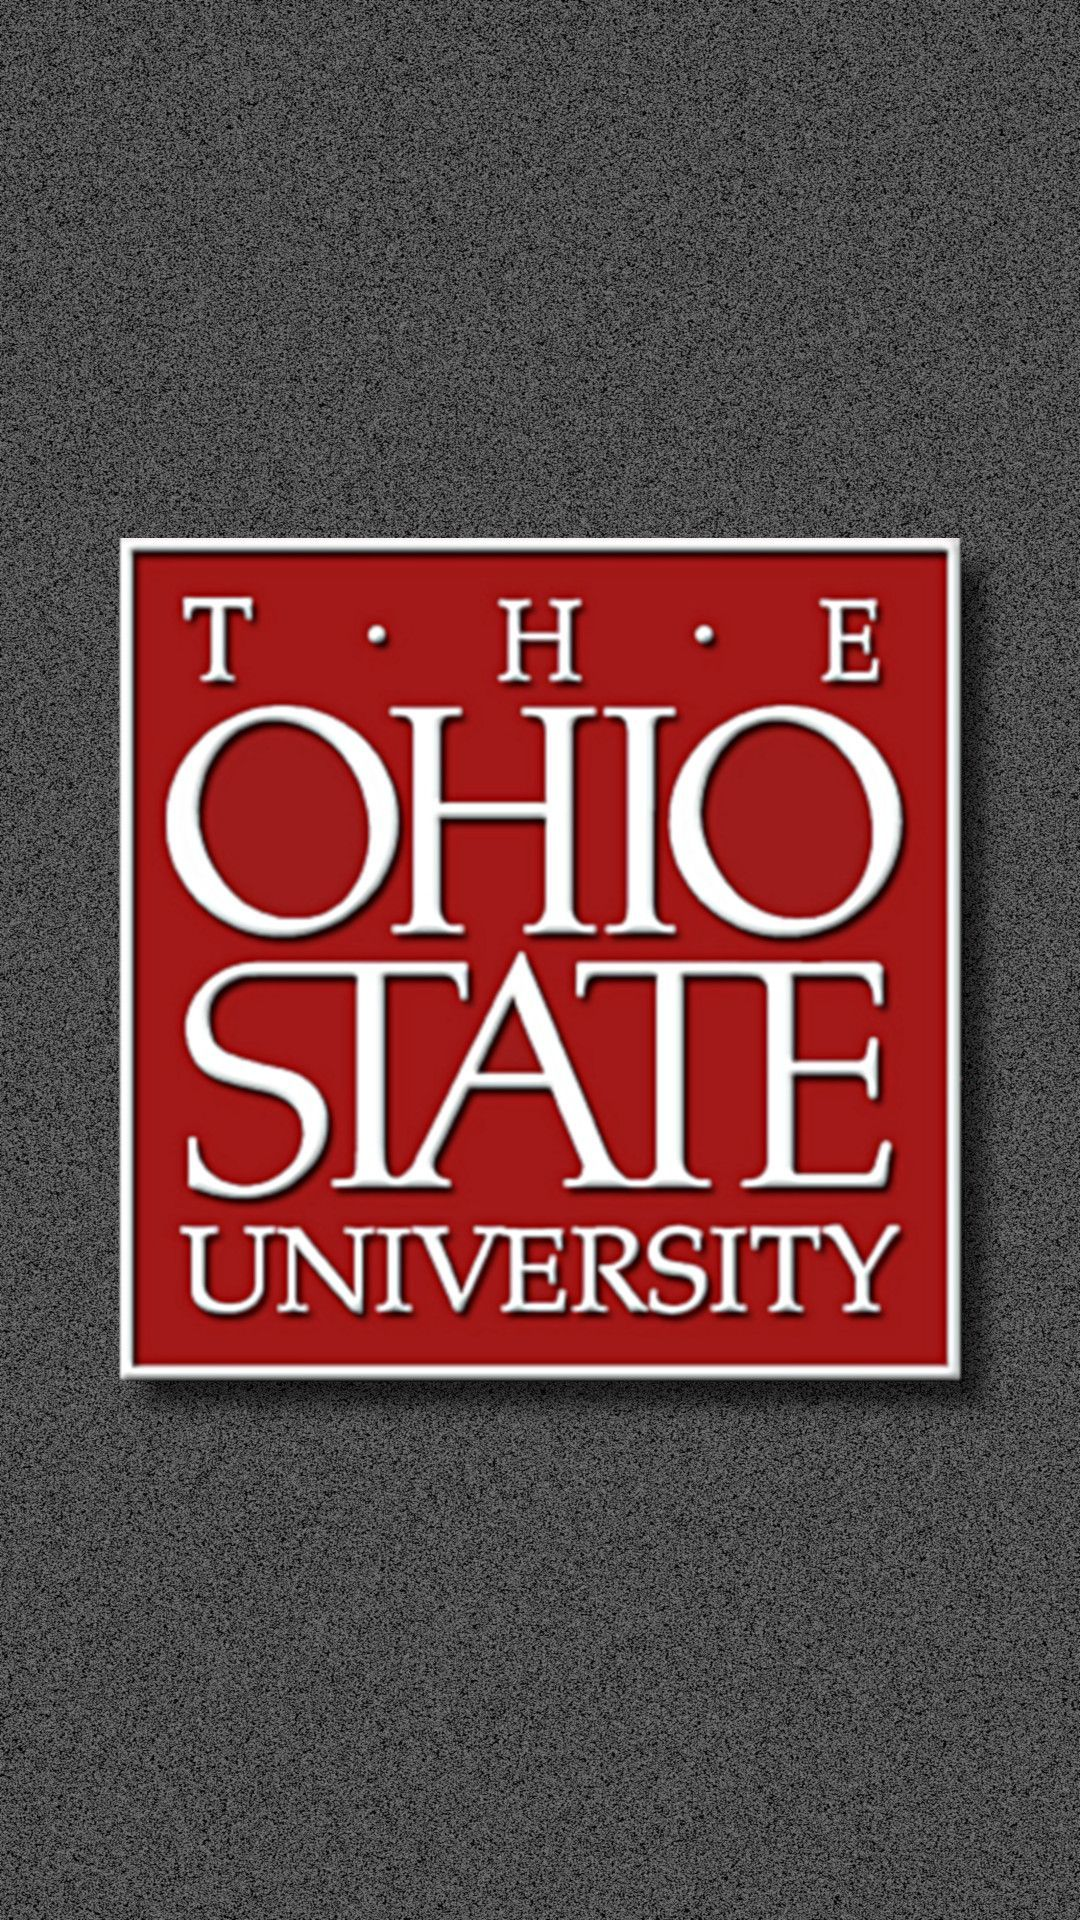 Cool Ohio State Wallpaper | Ohio state wallpaper, Ohio ...